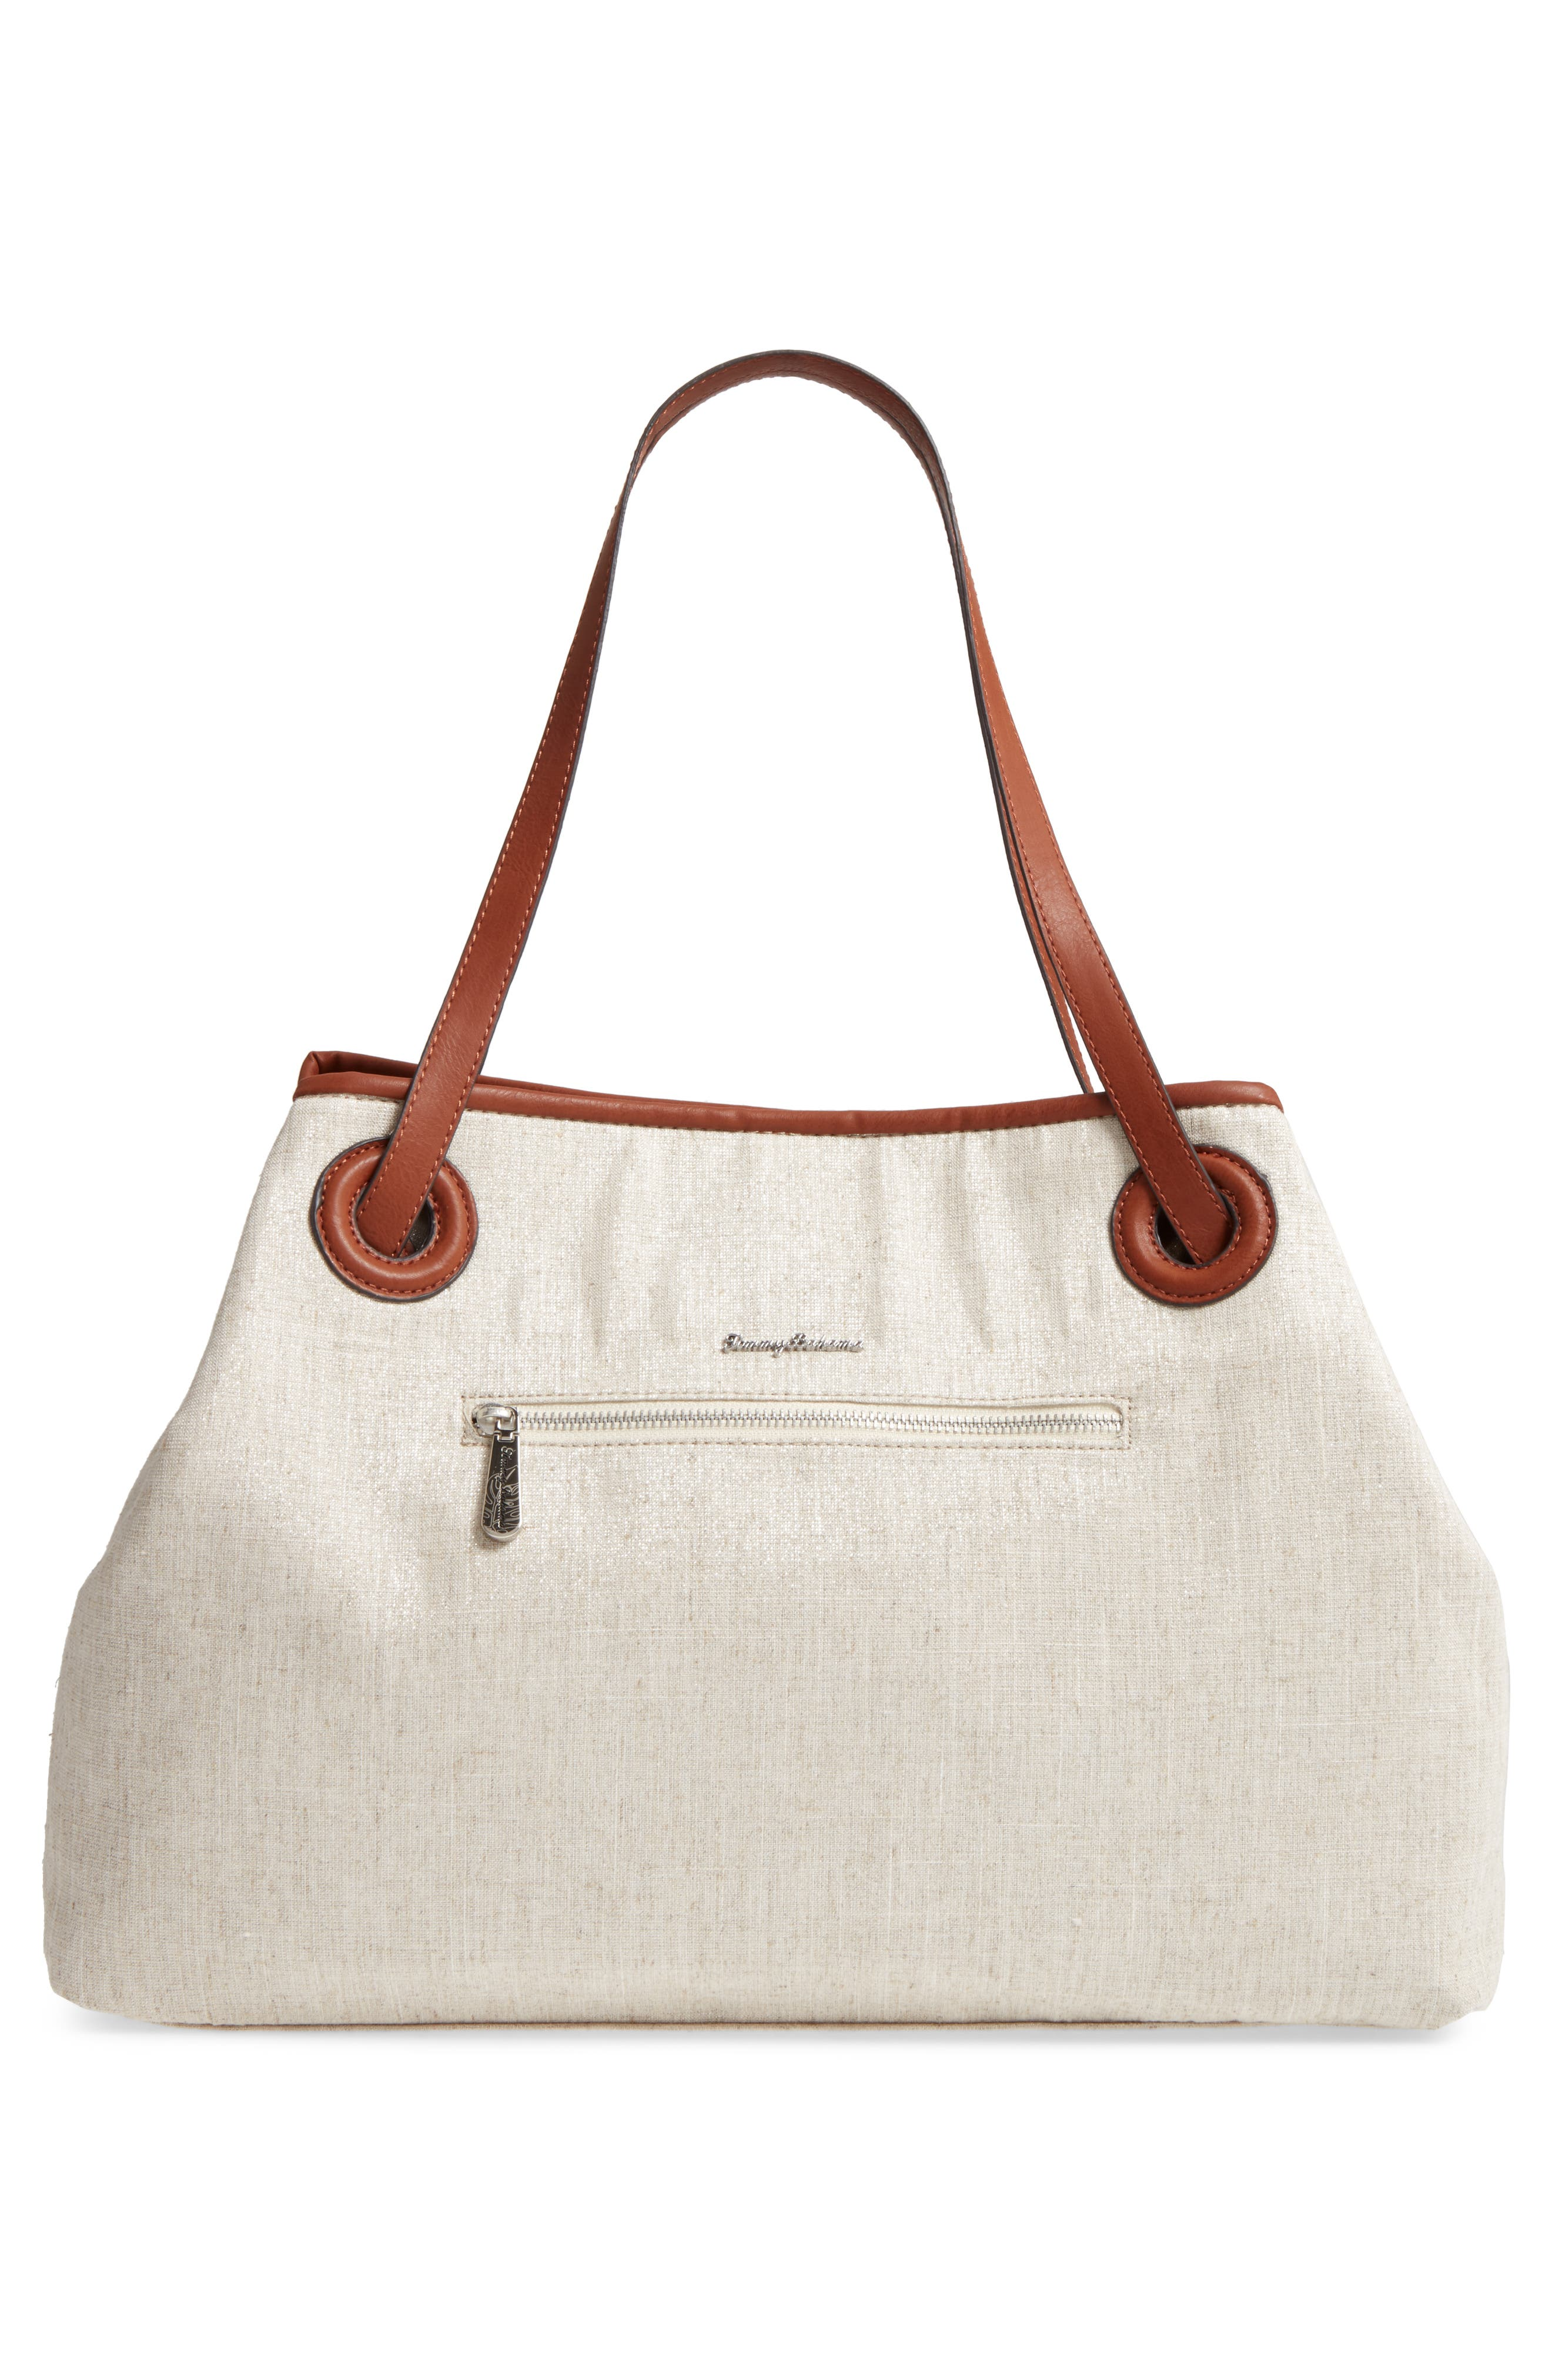 Waikiki Embroidered Canvas Tote,                             Alternate thumbnail 7, color,